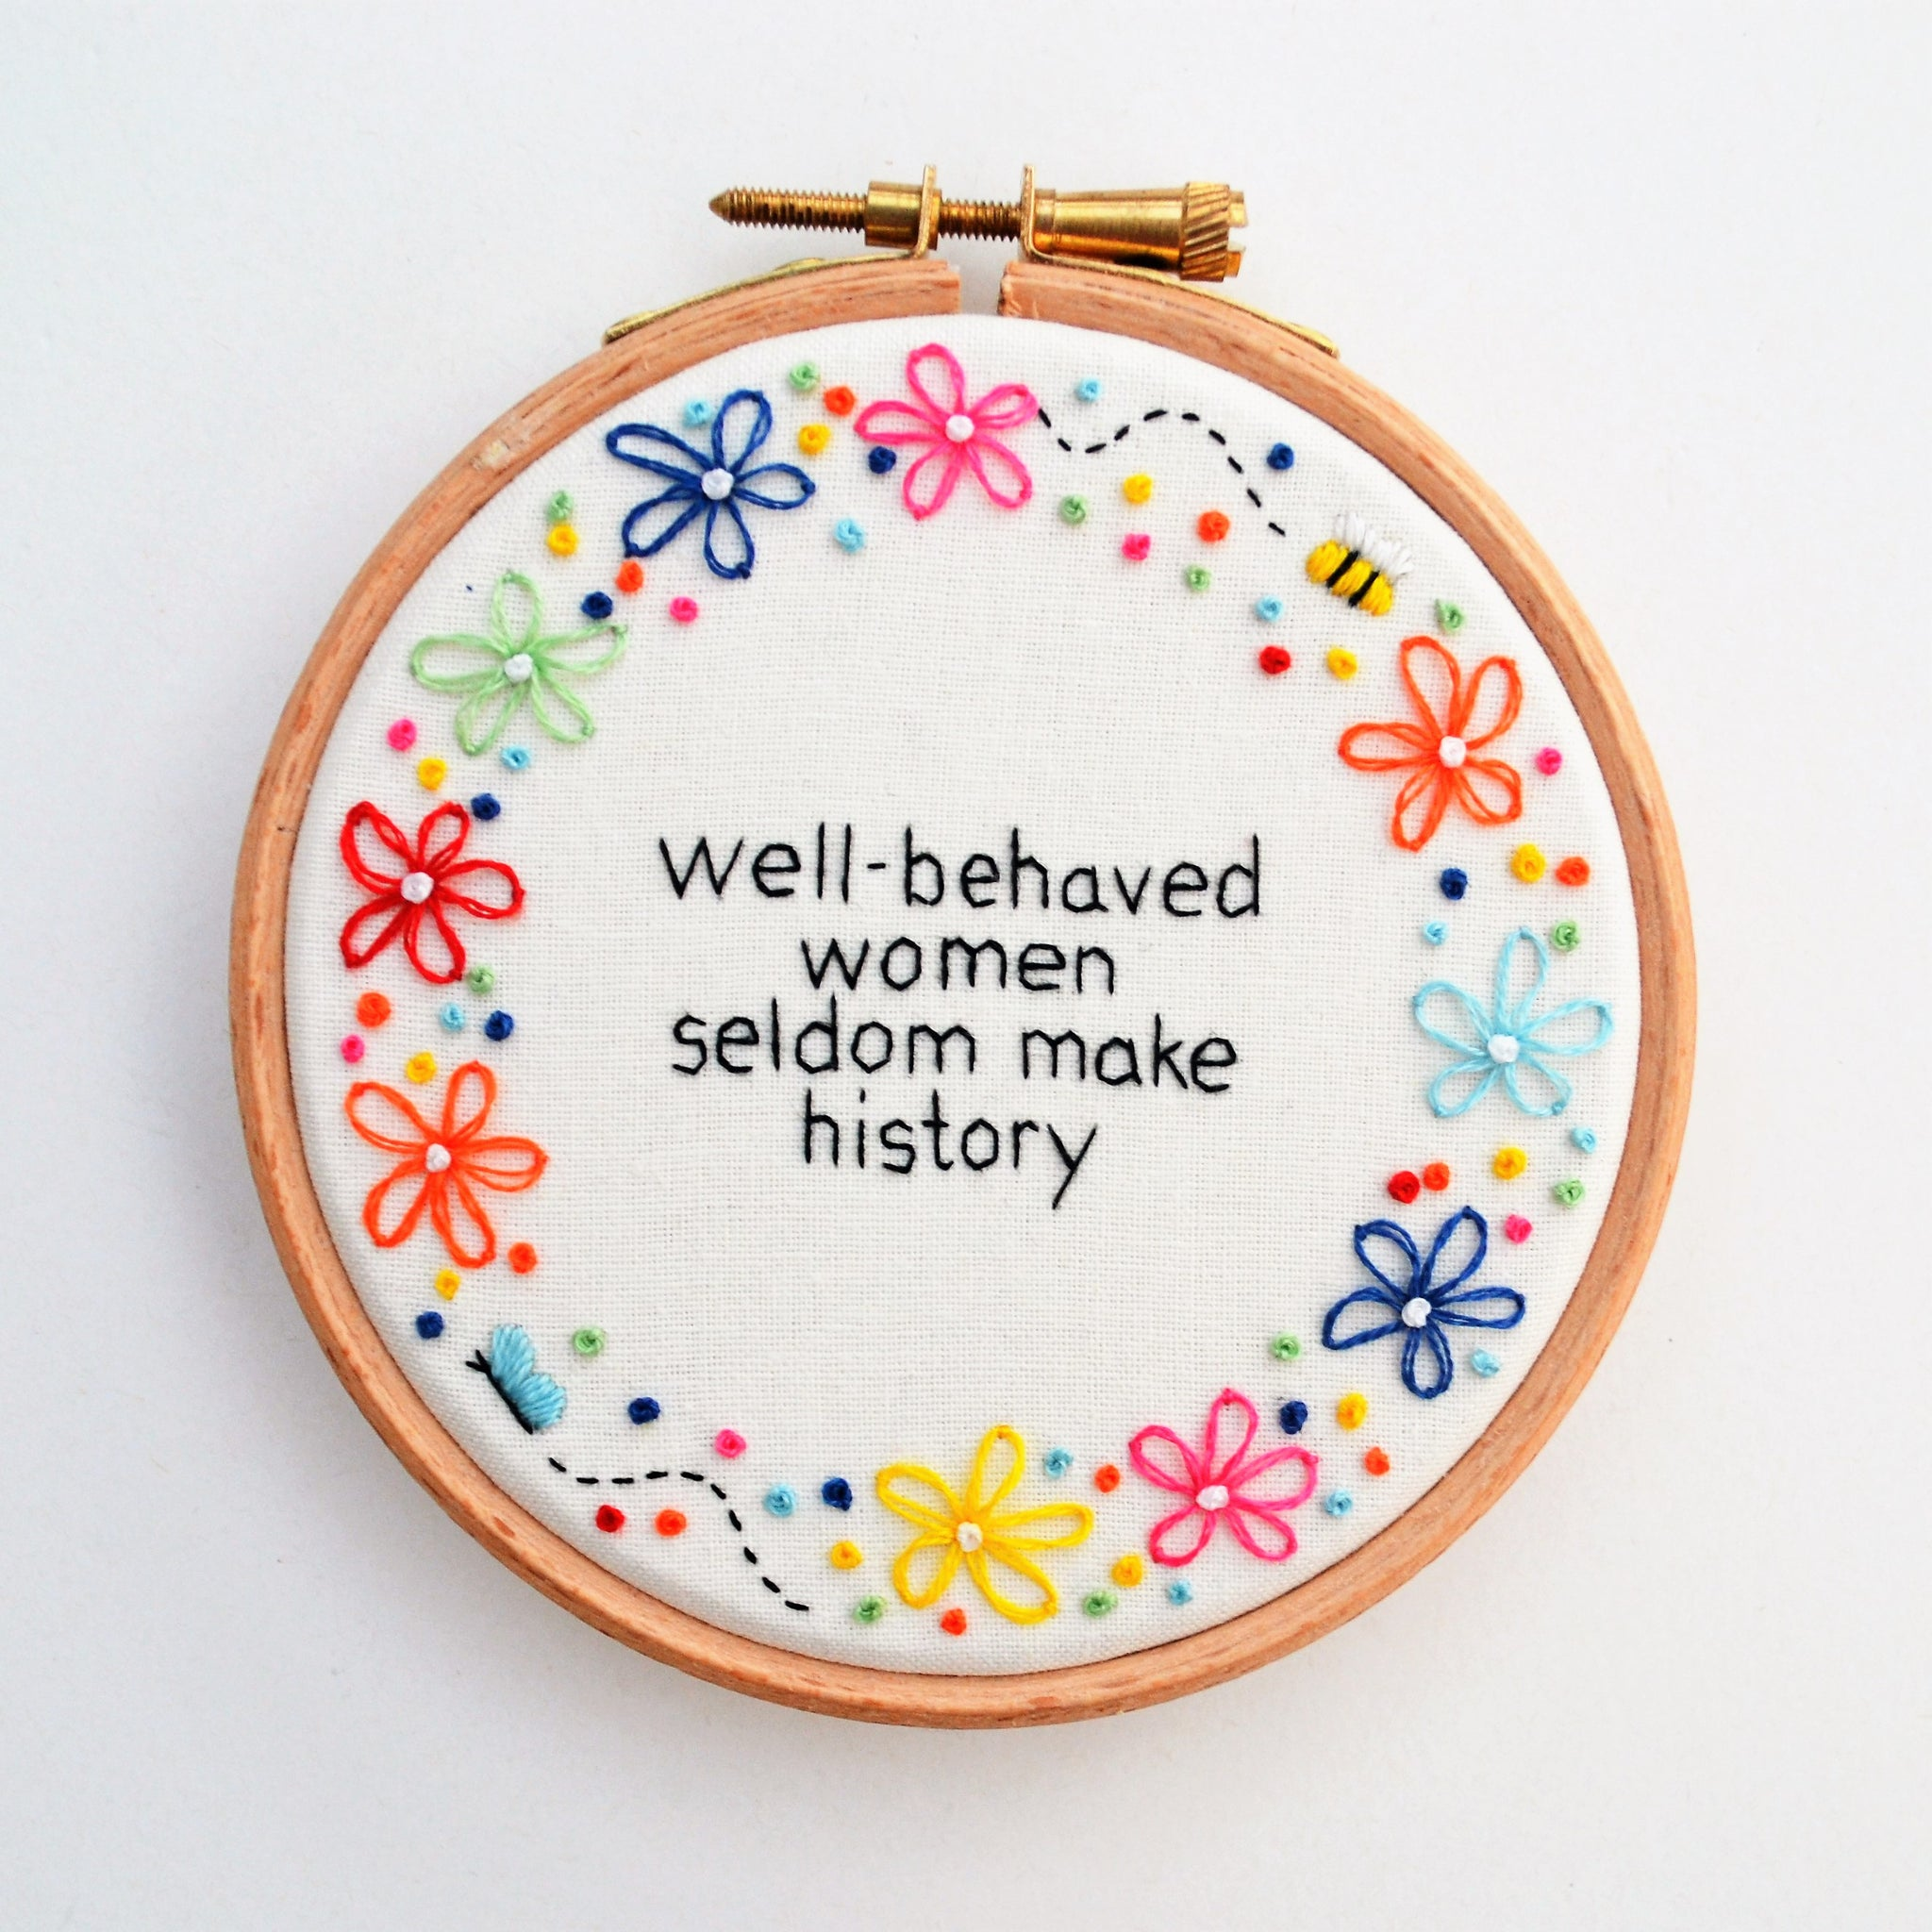 Hand embroidery hoop of the quote well-behaved women seldom make history surrounded by colourful flowers on a white background